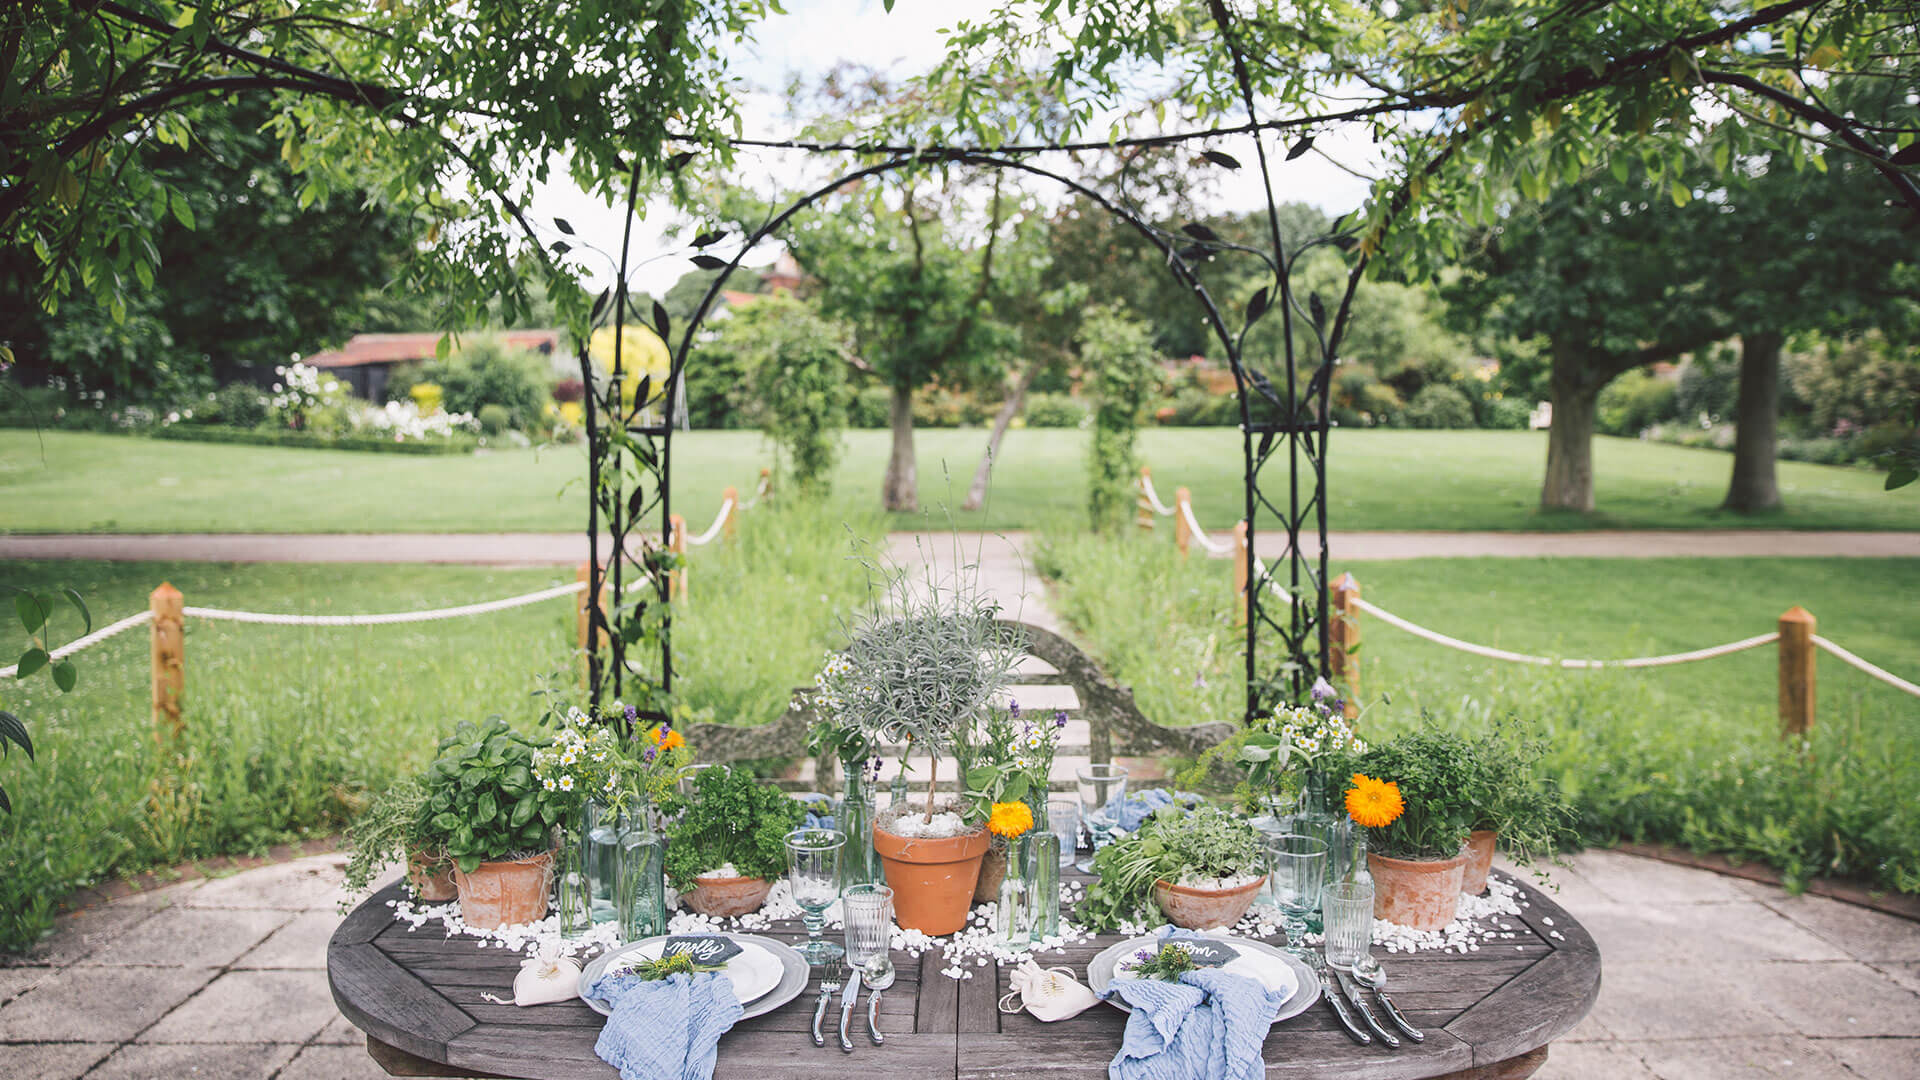 Outdoor Wedding Venue In Epping, Essex